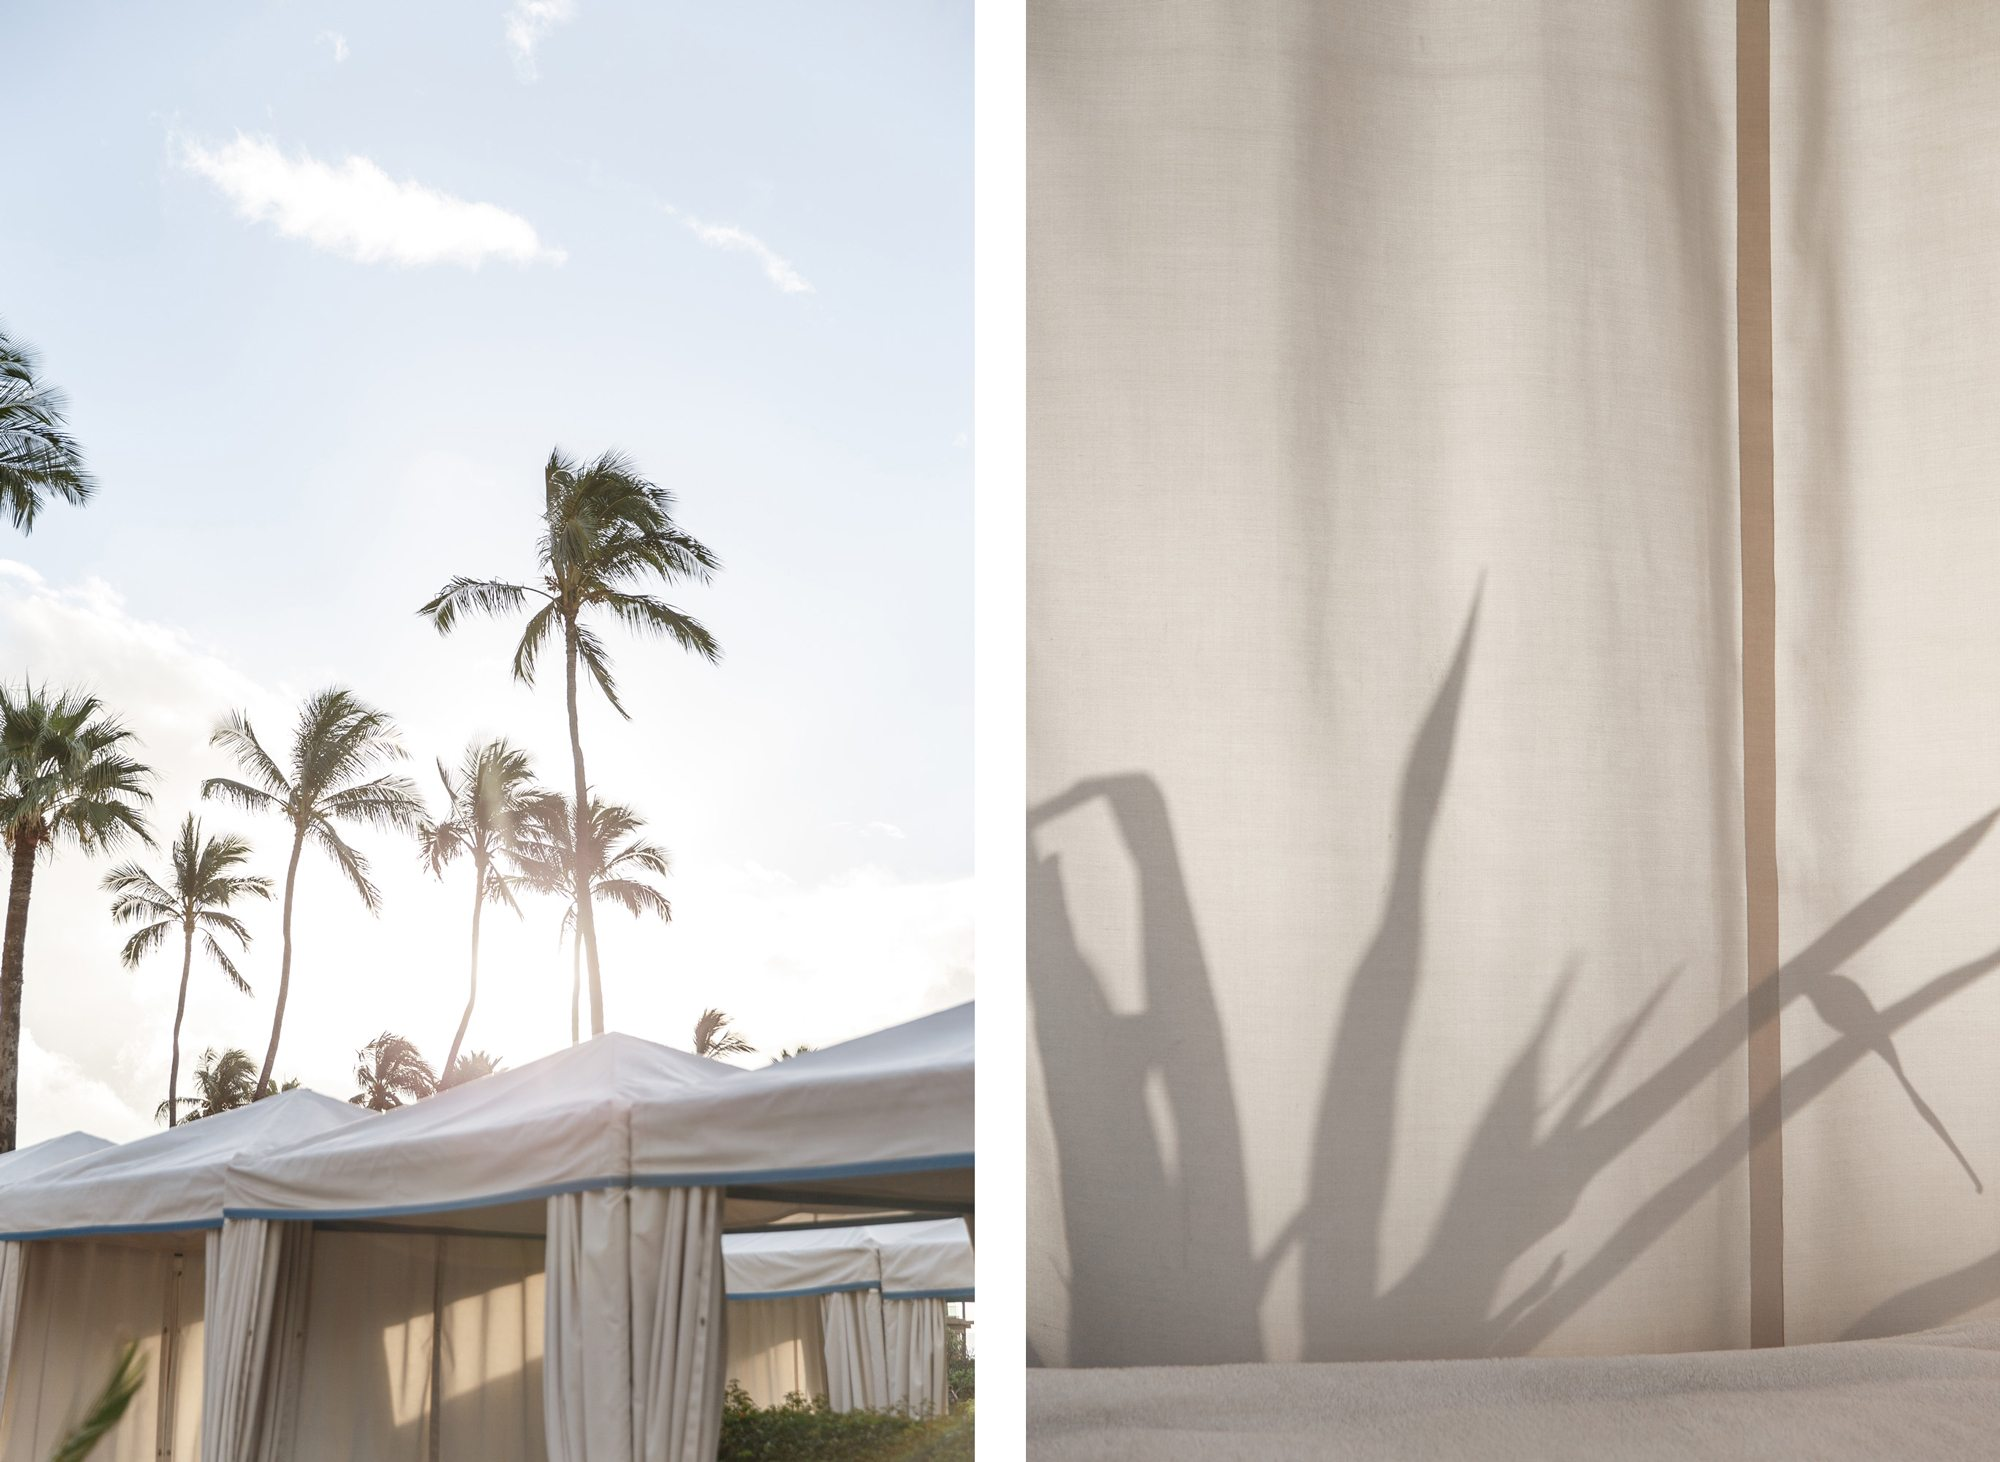 Maui palm trees over cabana, plant shadow comparison